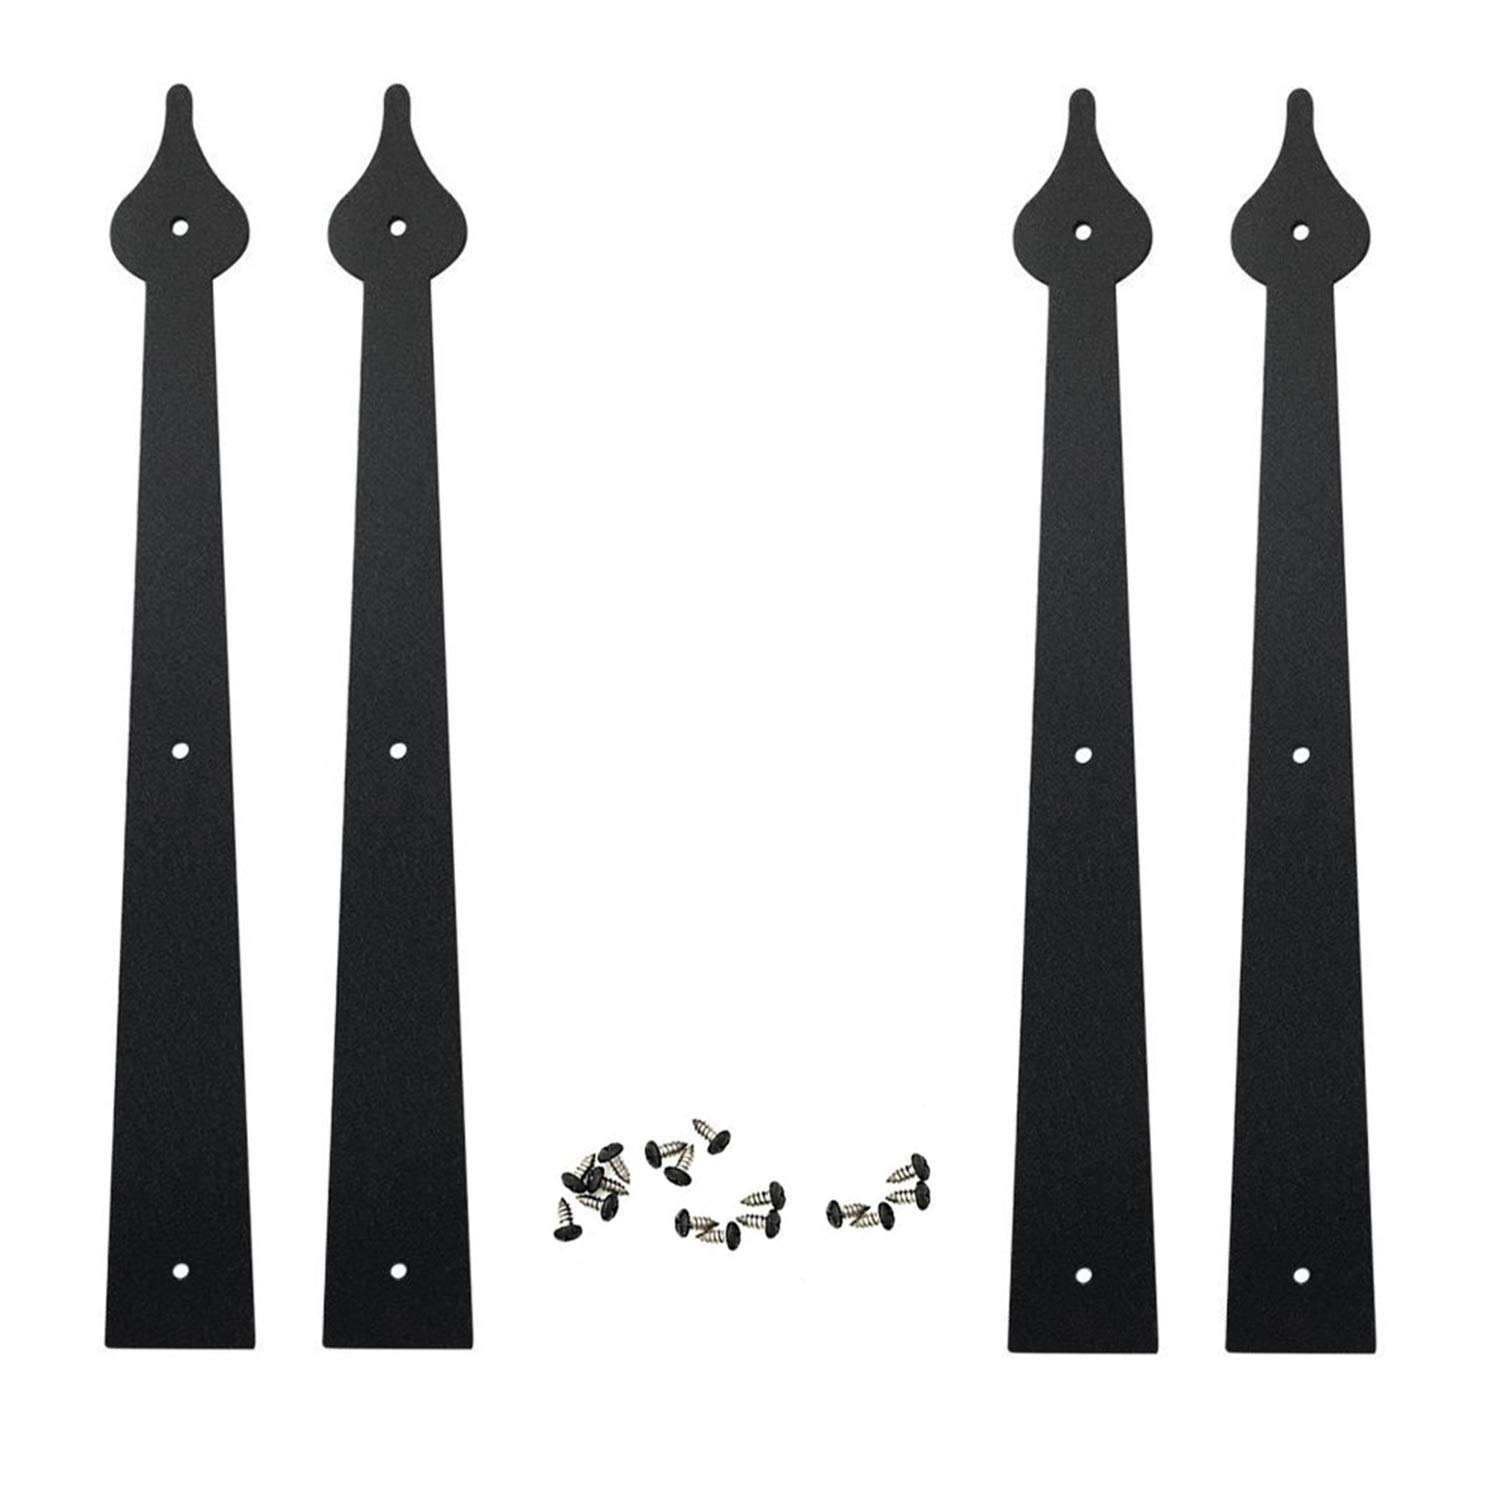 Handles ATK Carriage Spear House Garage Door Decorative Hardware Set